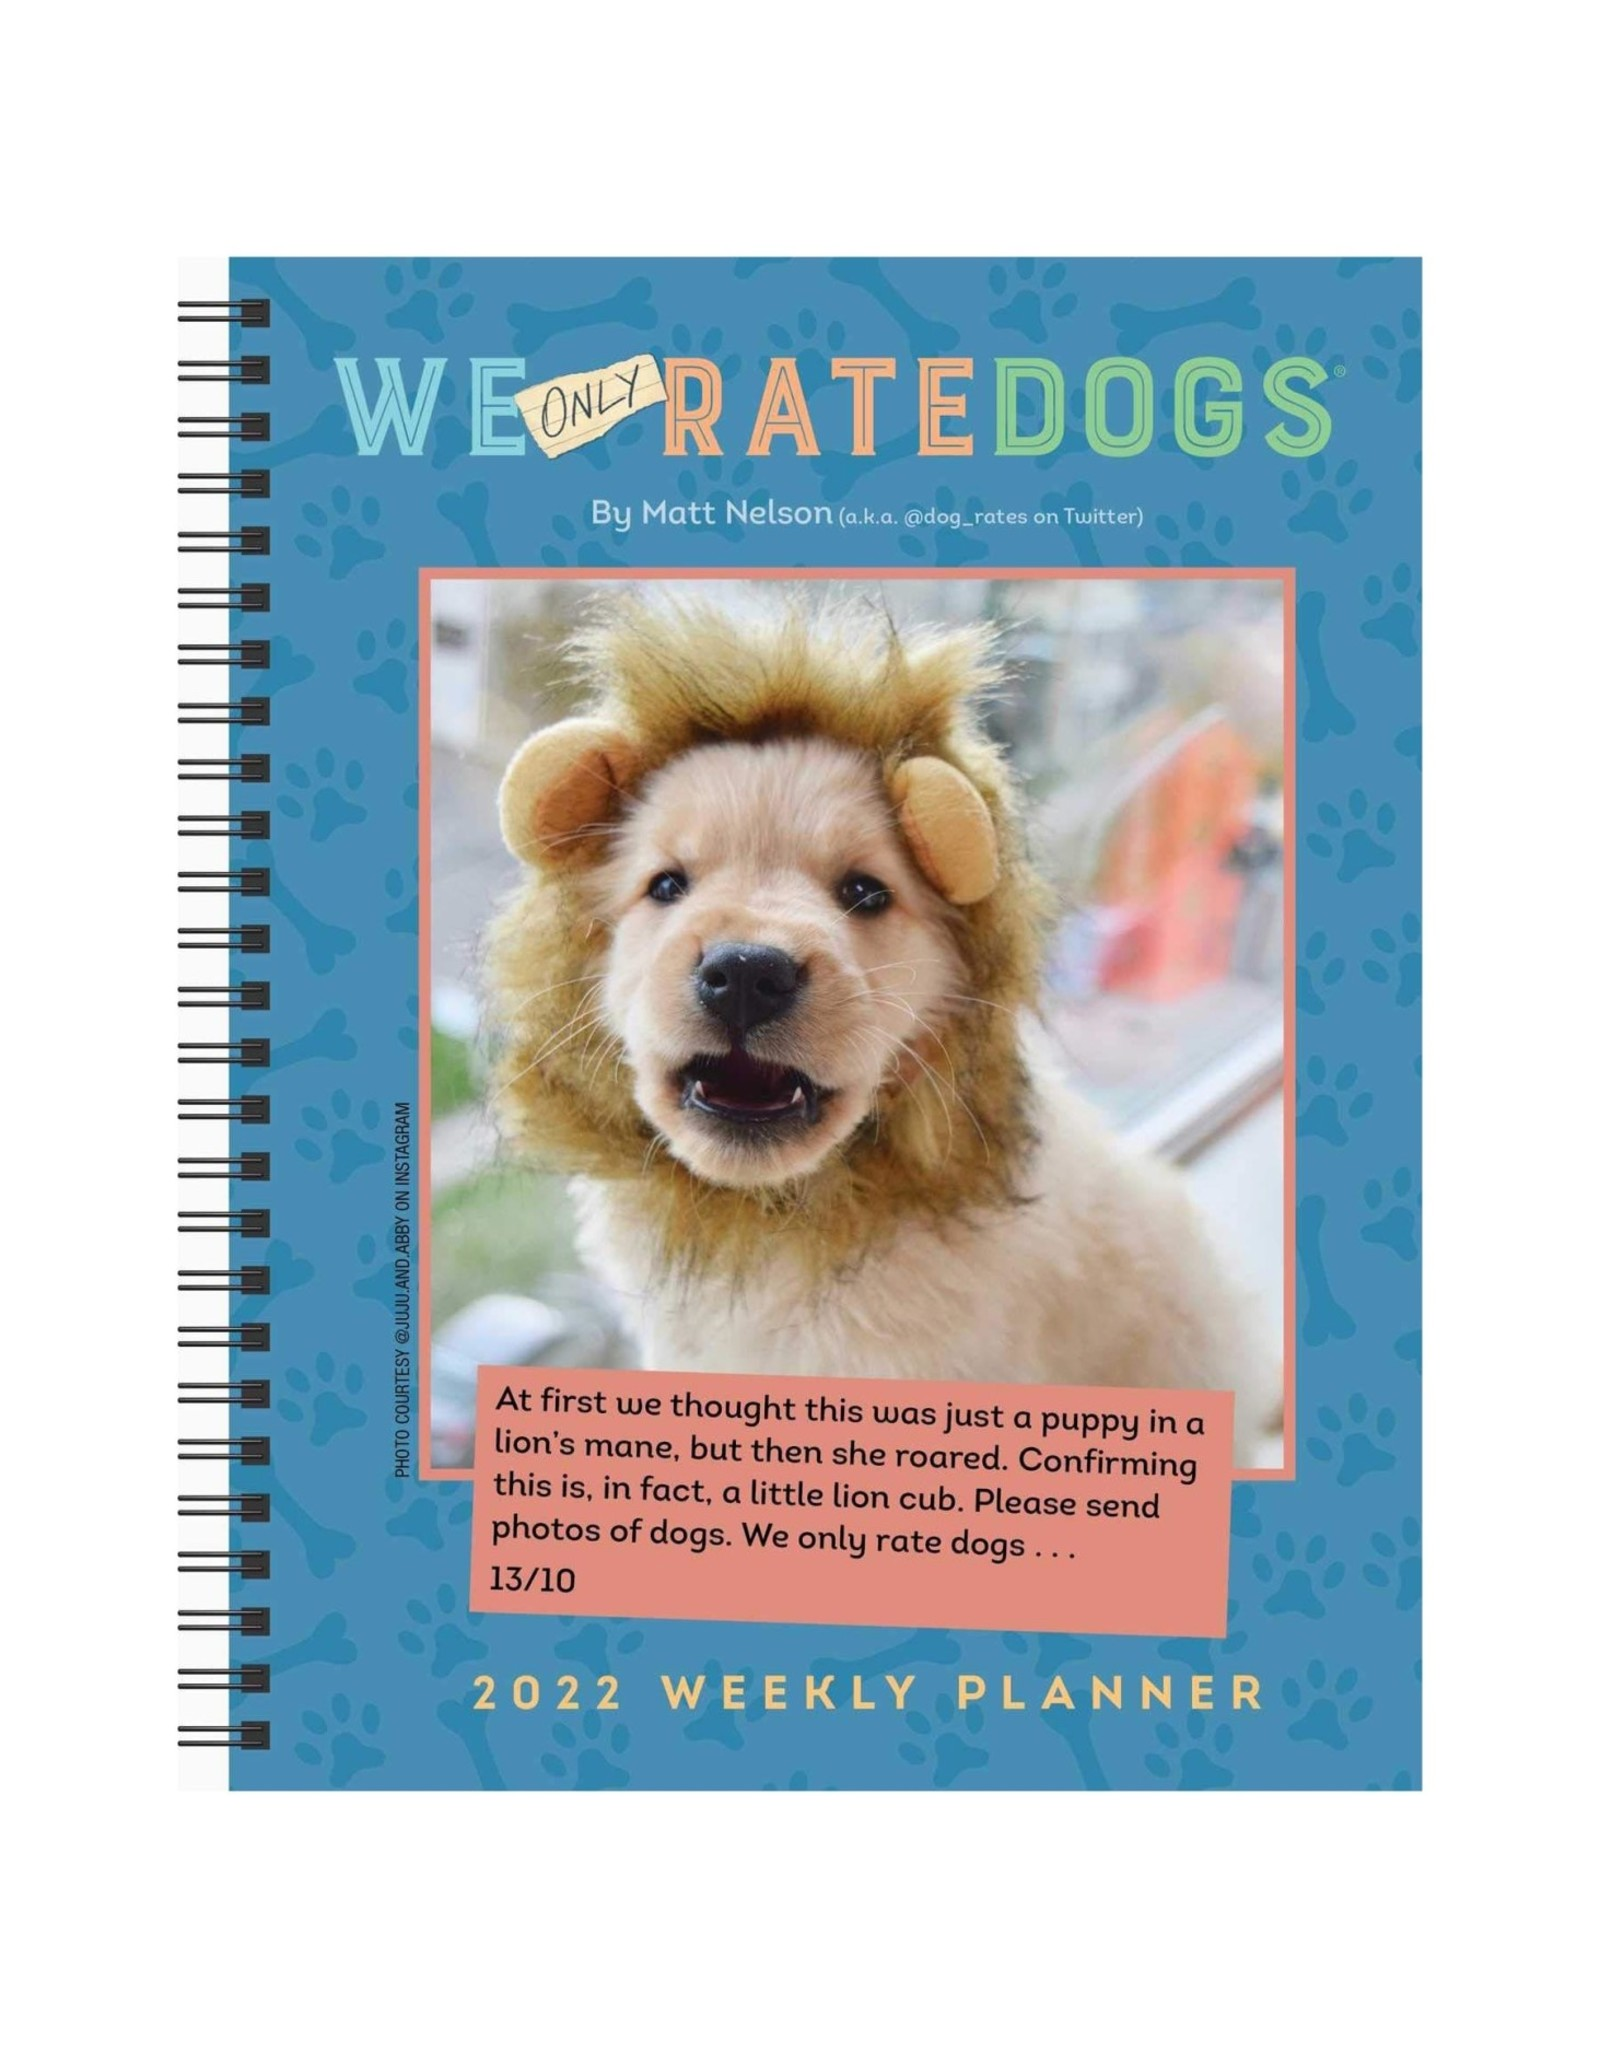 We Only Rate Dogs 2022 Weekly Planner Calendar